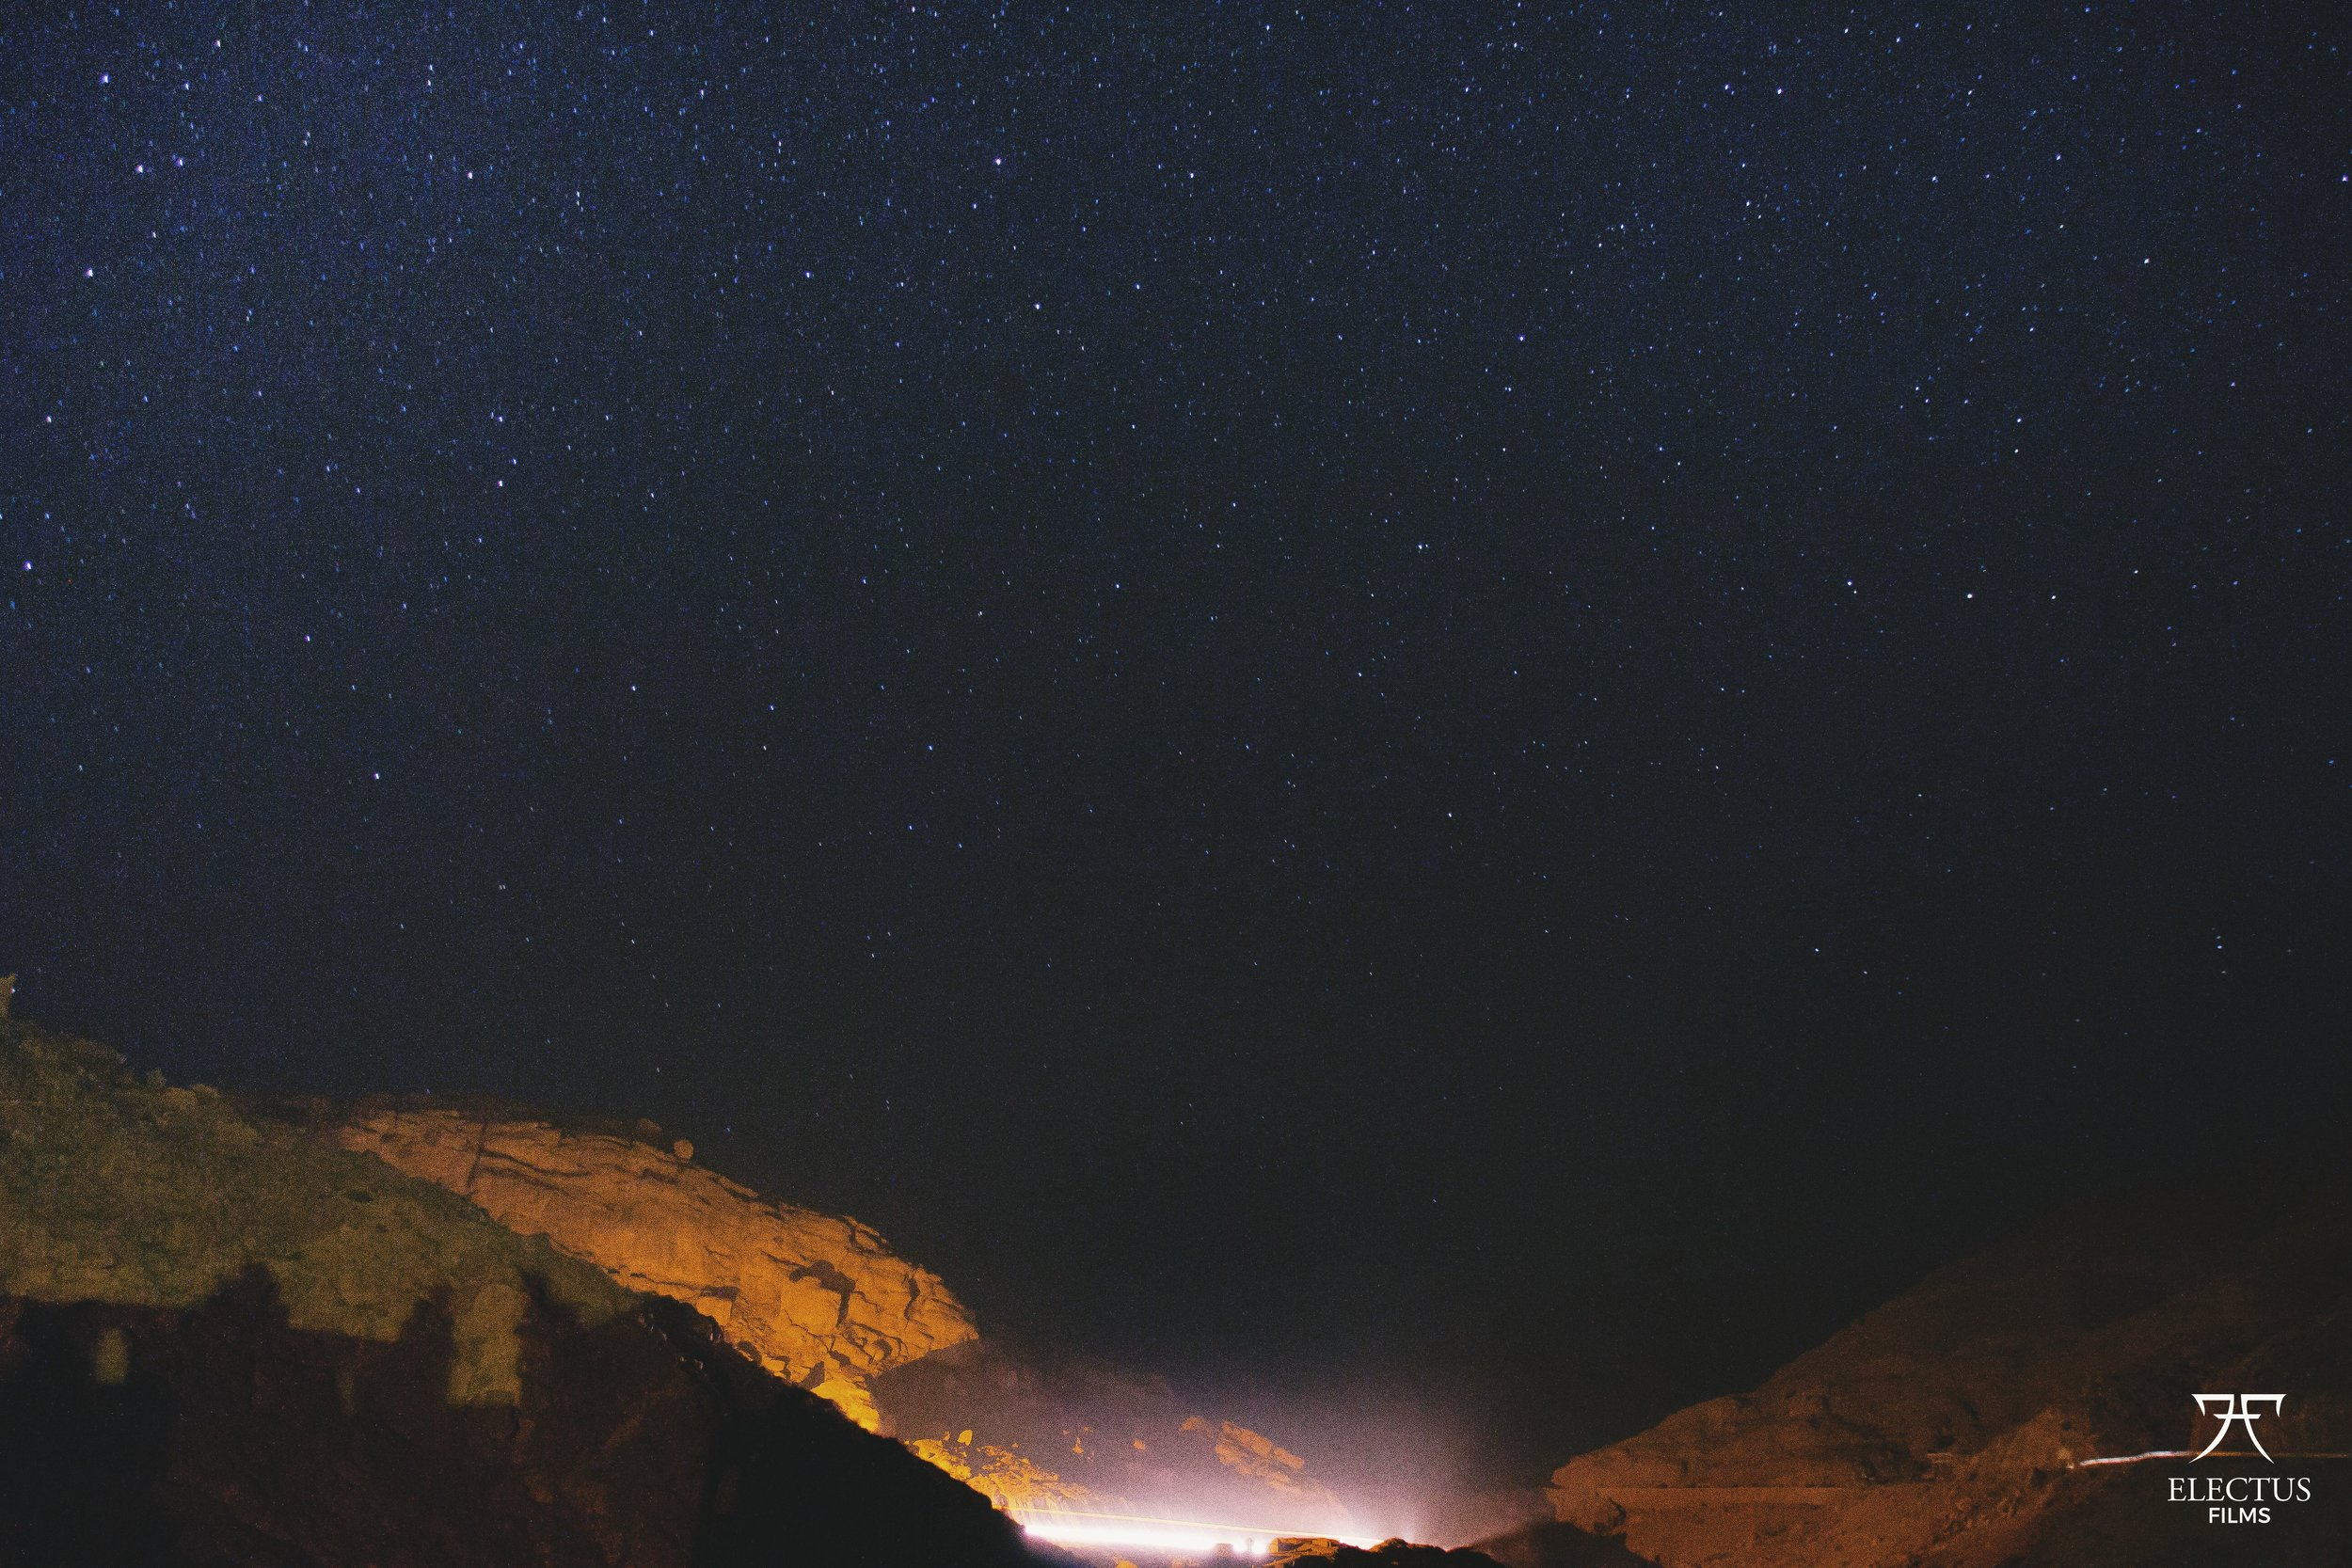 Nighttime photo from Morroco, capturing the starry night sky in a valley.